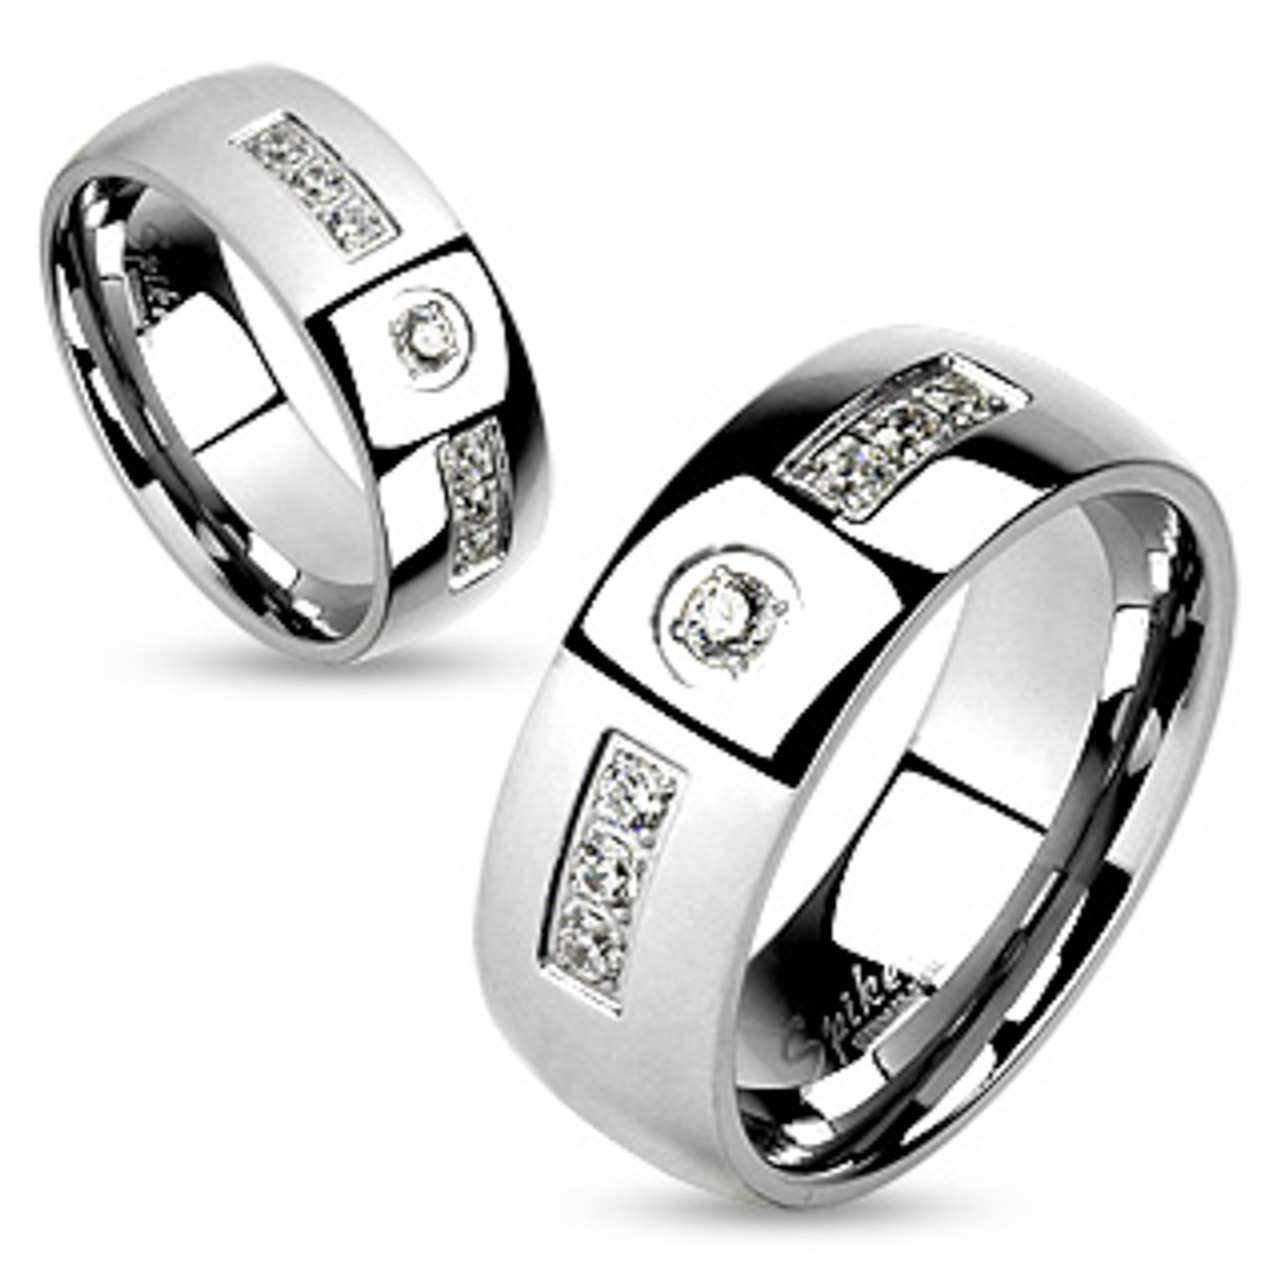 8mm Stainless Steel Cubic Zirconia 3-stone Domed Wedding Band Ring